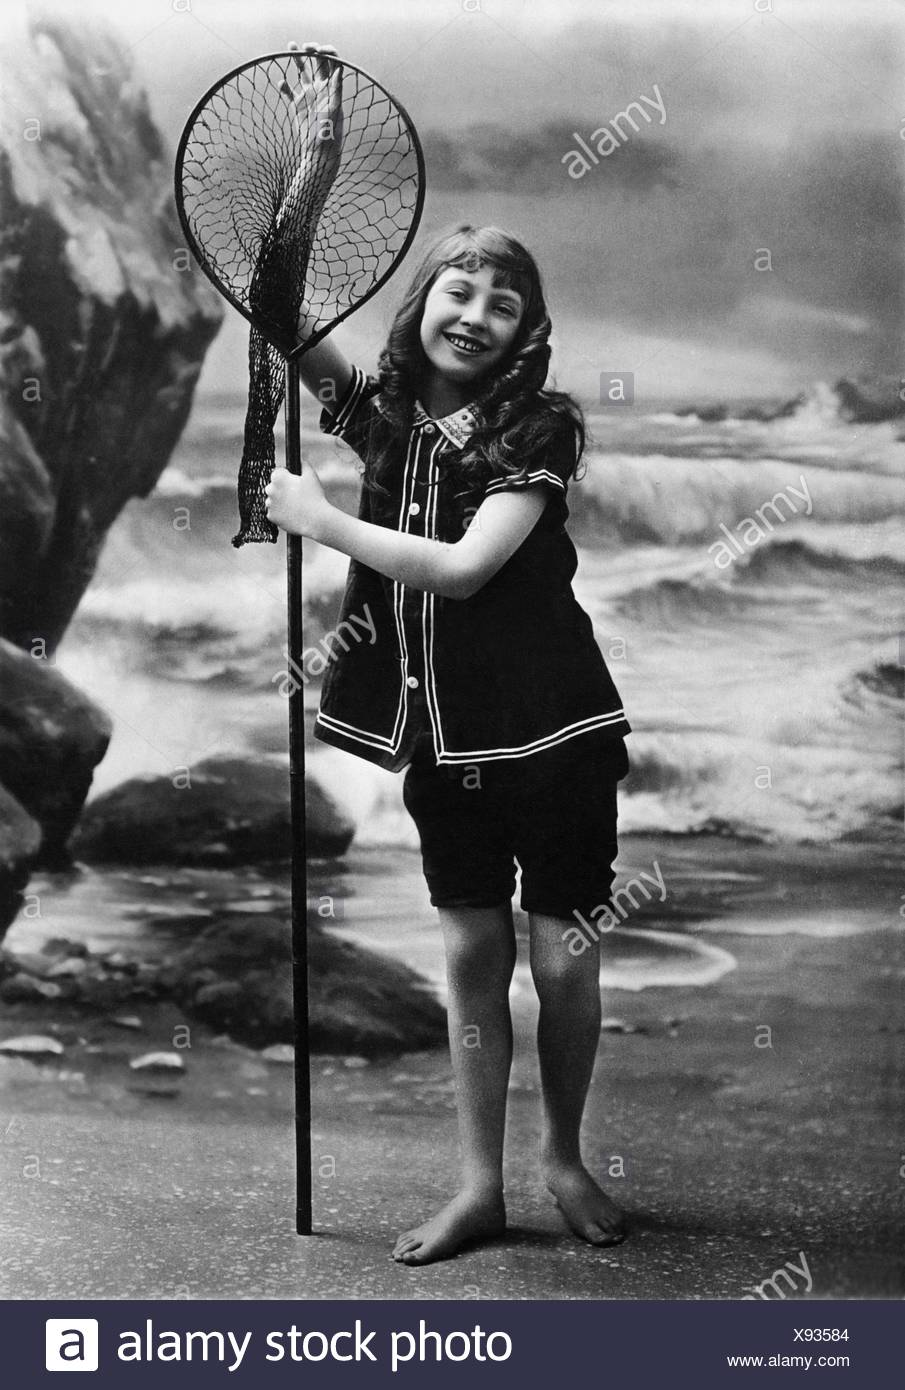 bathing, beach fashion, girl in cossie with hand net, 1920s, Additional-Rights-Clearences-NA - Stock Image